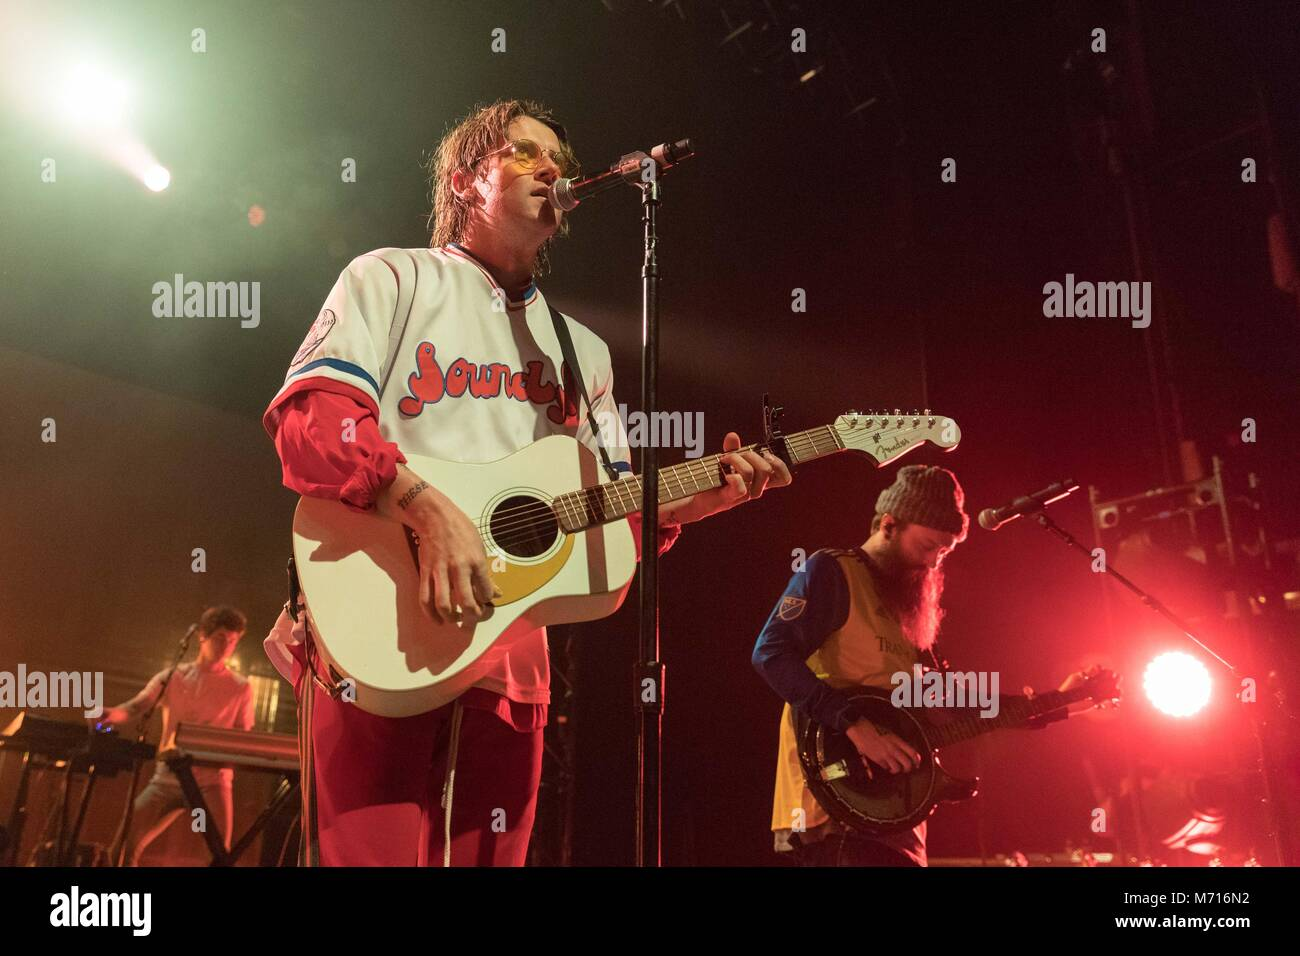 Madison, Wisconsin, USA. 6th Mar, 2018. DANIEL WEATHERBY, JUDAH AKERS and NATE ZUERCHER of Judah and the Lion during Stock Photo